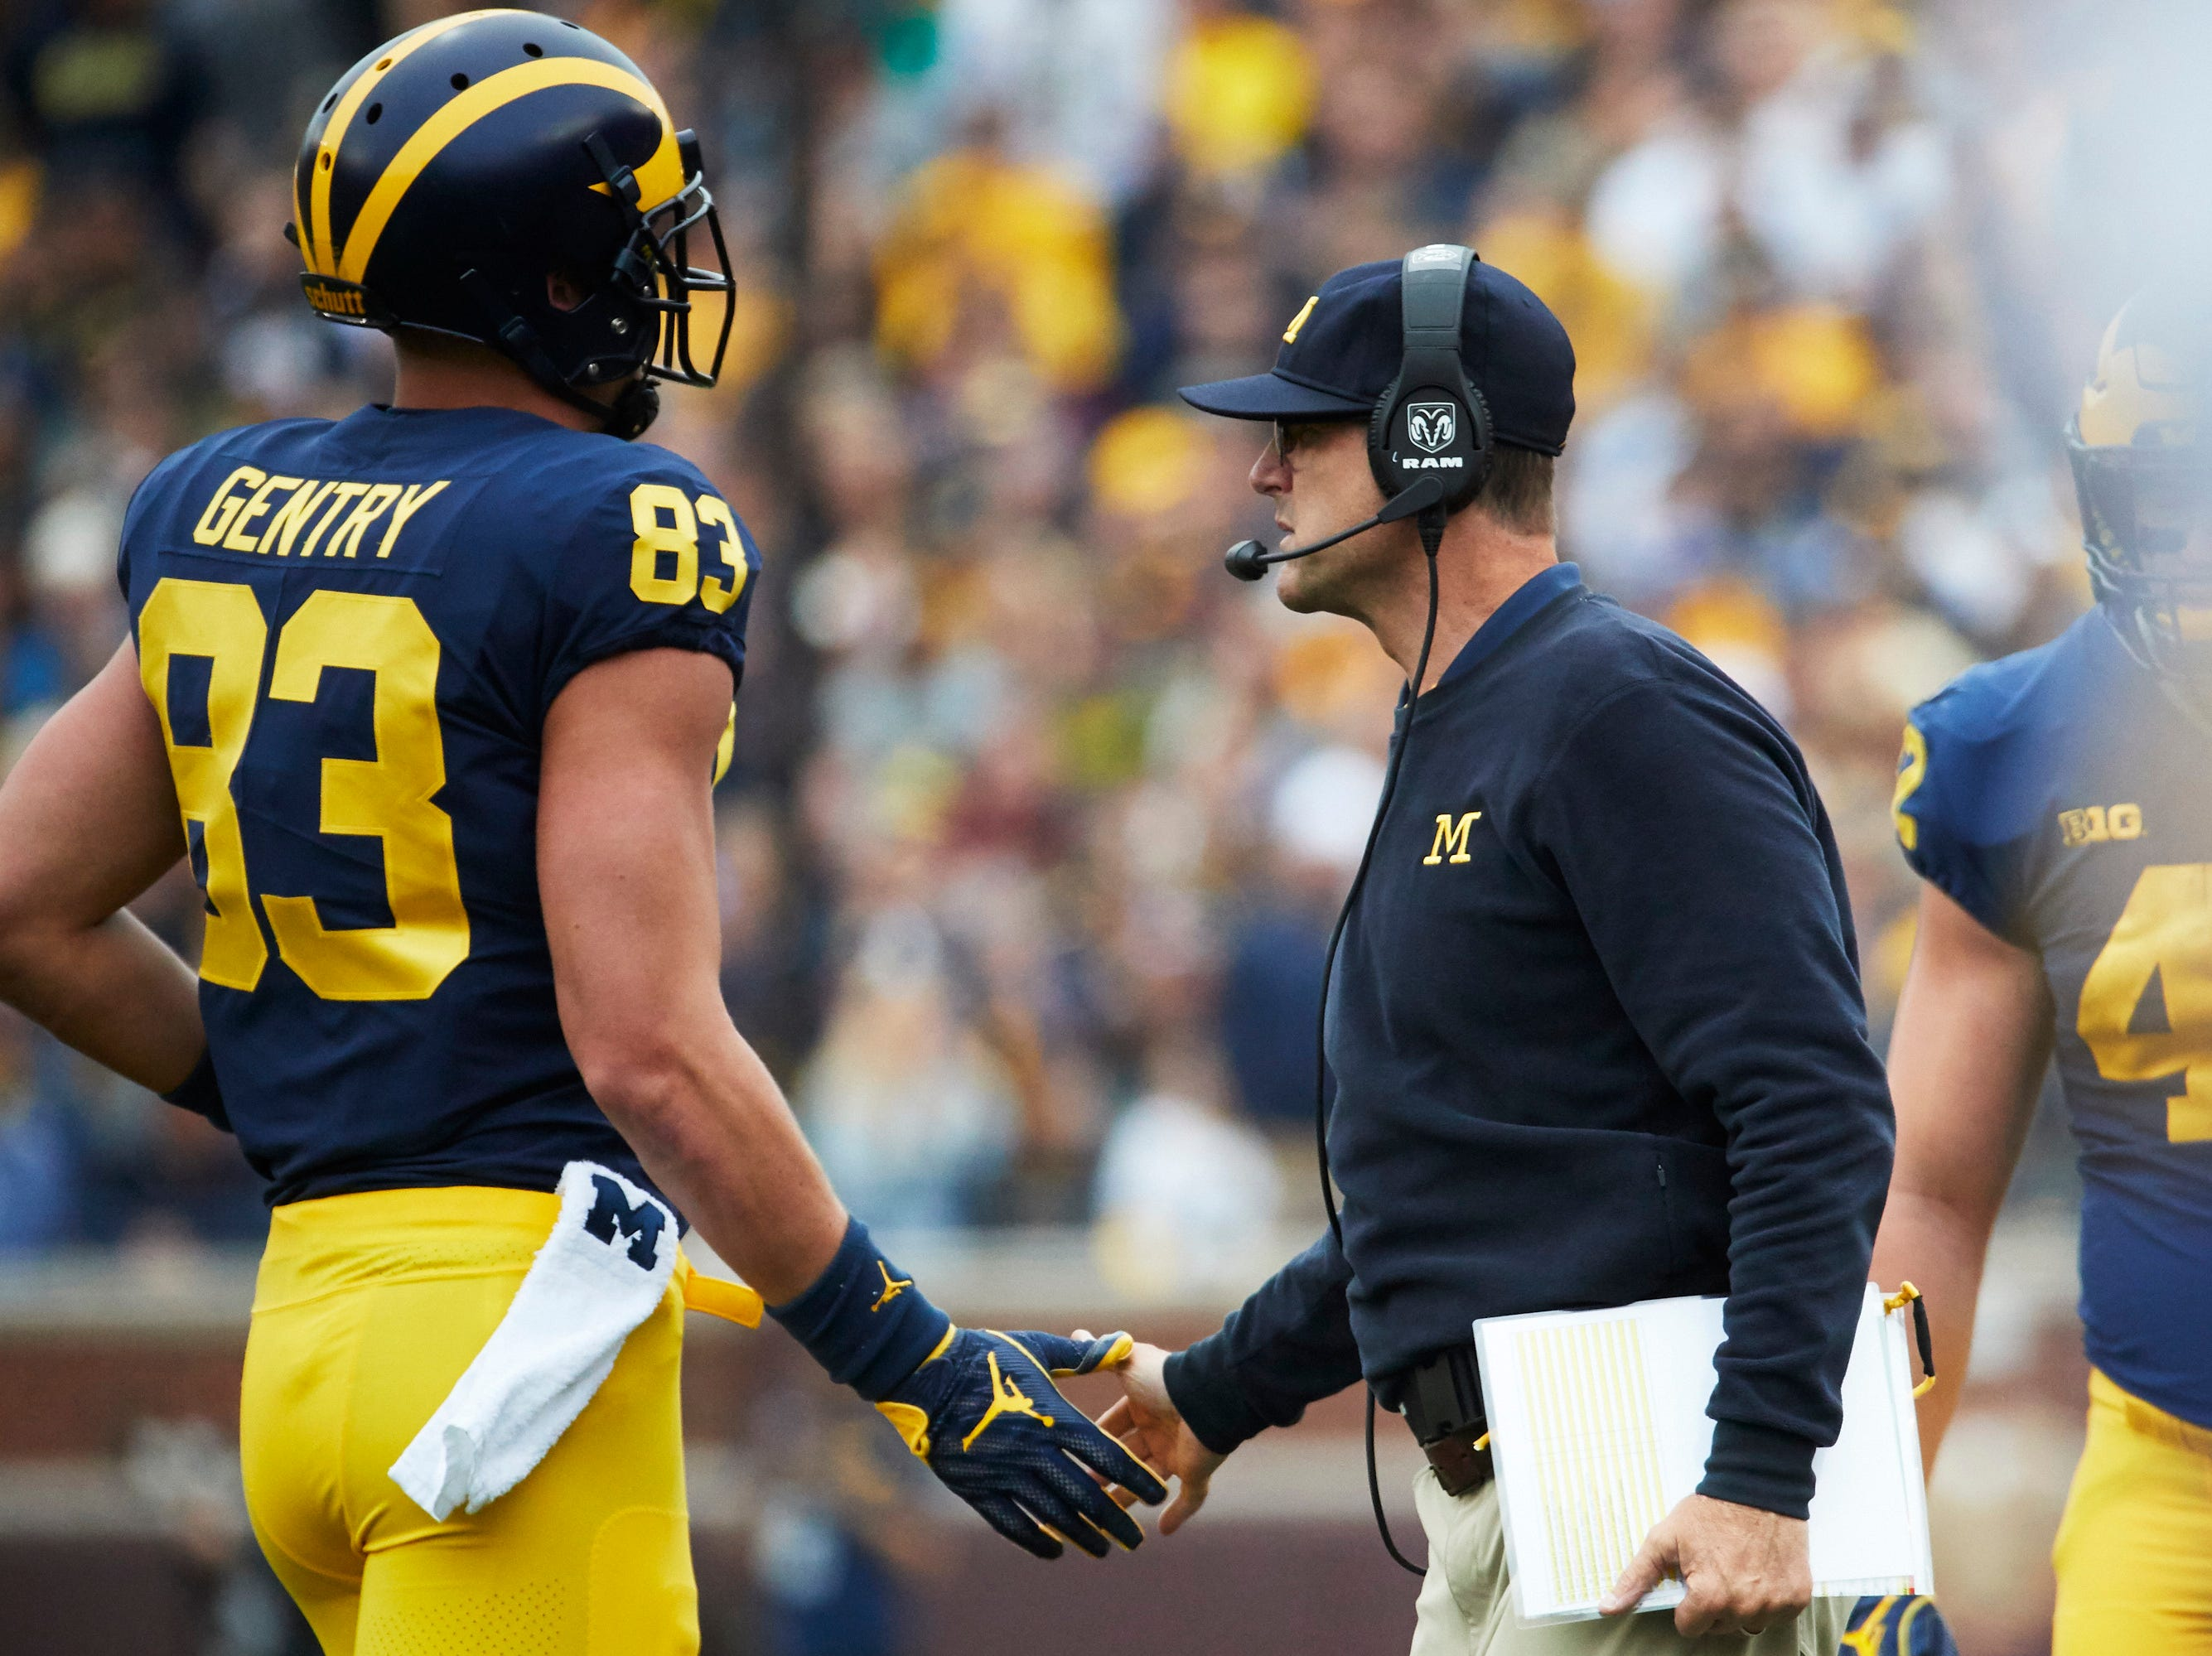 Sep 8, 2018; Ann Arbor, MI, USA; Michigan Wolverines head coach Jim Harbaugh greets tight end Zach Gentry (83) after a extra point in the first half against the Western Michigan Broncos at Michigan Stadium. Mandatory Credit: Rick Osentoski-USA TODAY Sports